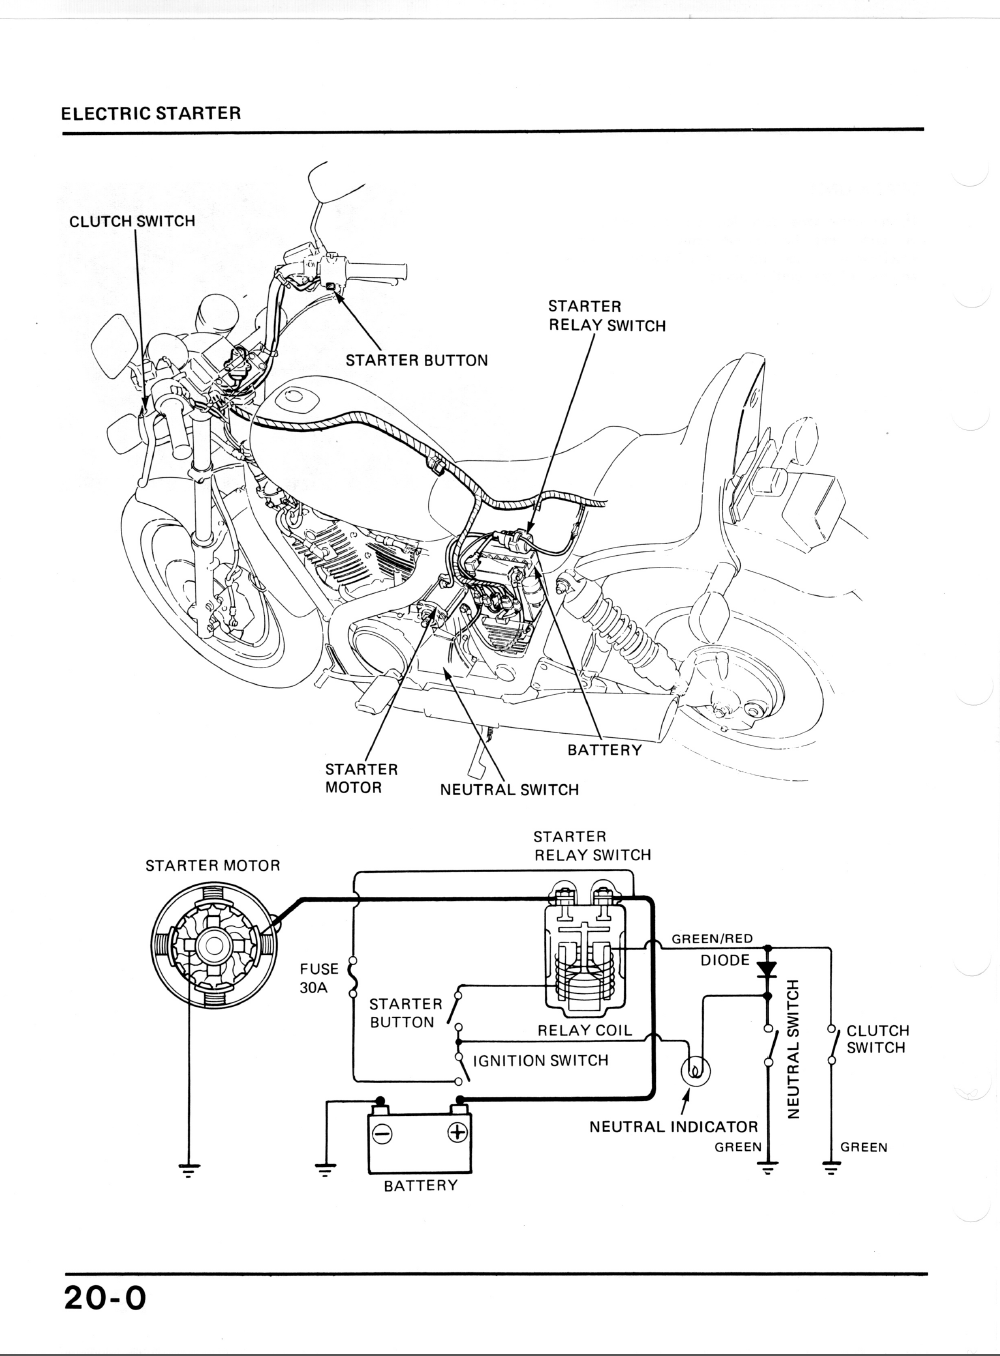 9266d1409799691 1984 honda shadow 700 electric stater 1984 honda shadow 700 vt commodore fuel pump wiring diagram at gsmportal.co